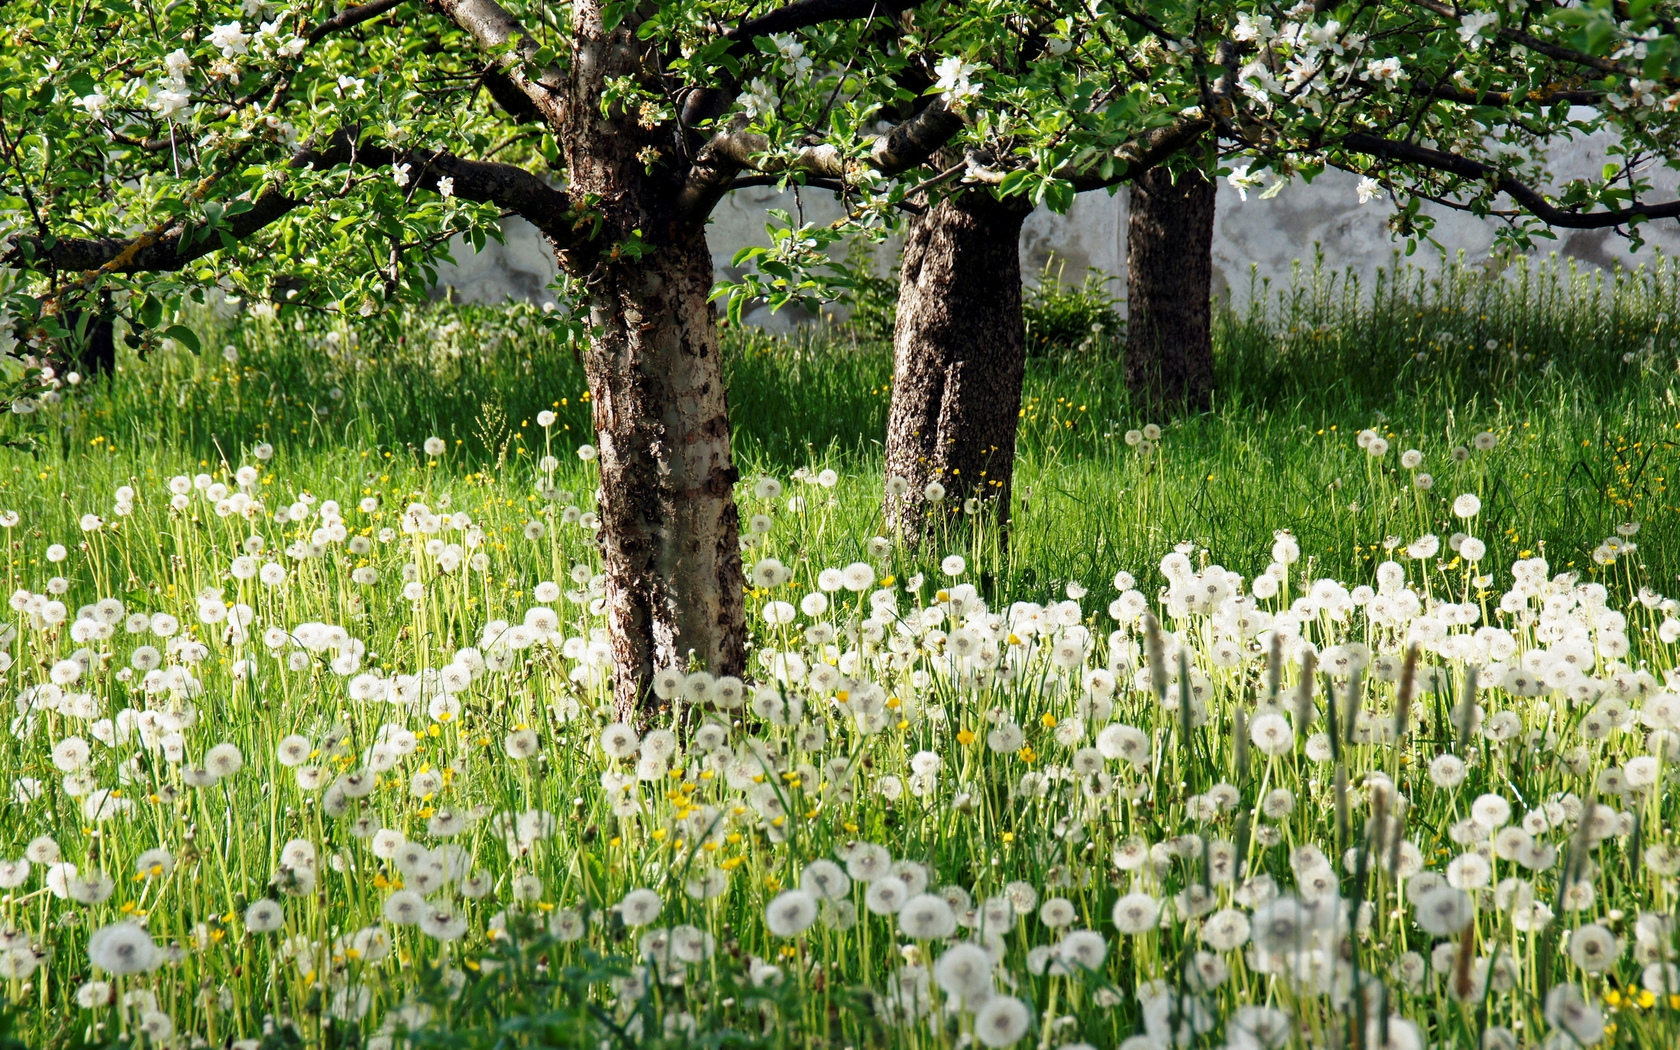 dandelions_spring_apple-trees_flowering_glade_hd-wallpaper-53844_1_.jpg